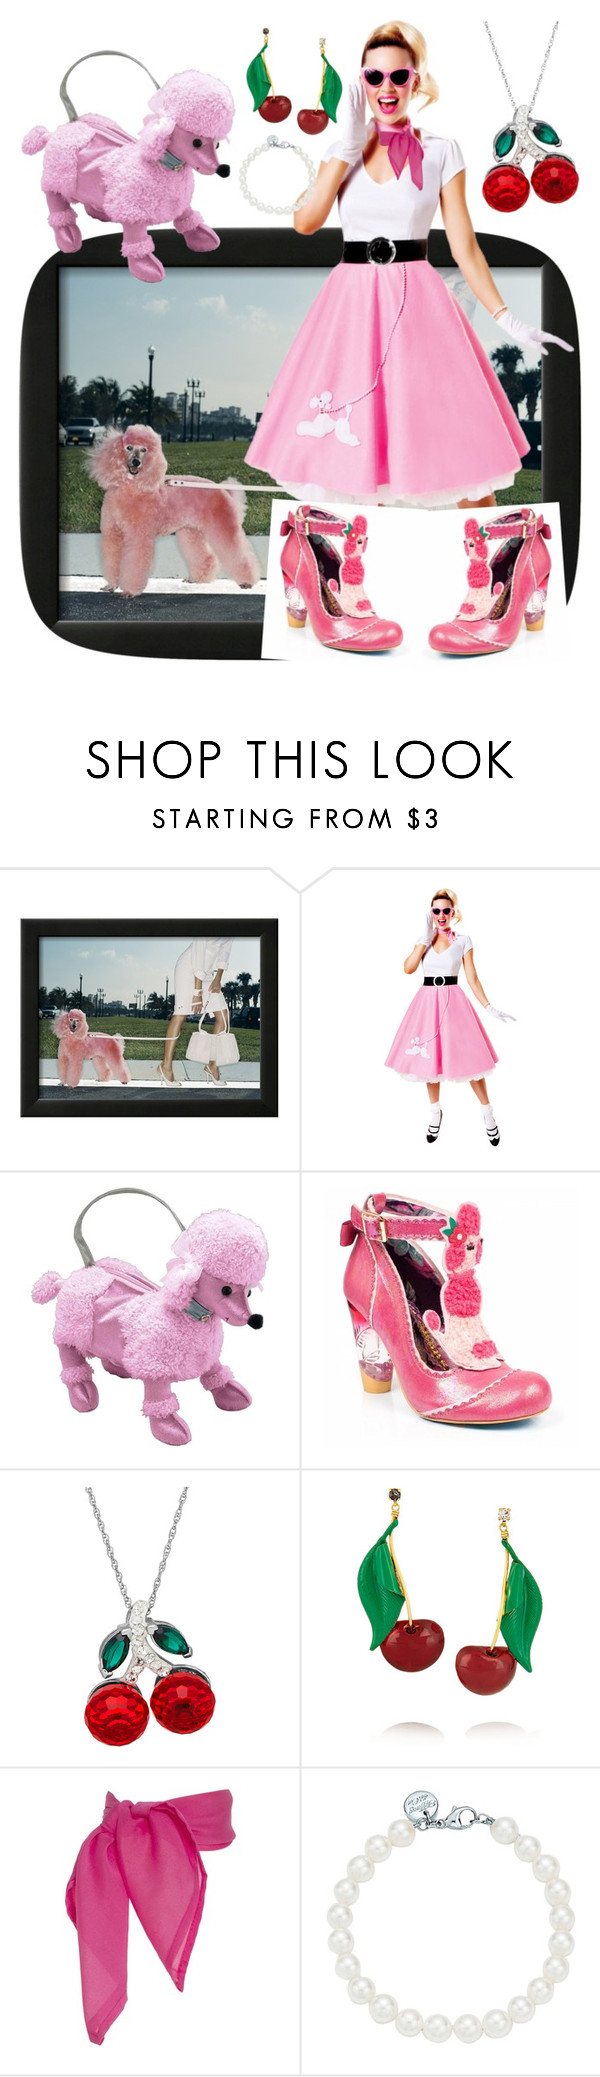 """One Big Pink Poodle"" by creation-gallery ❤ liked on Polyvore featuring Irregular Choice, Erickson Beamon and Tiffany & Co."